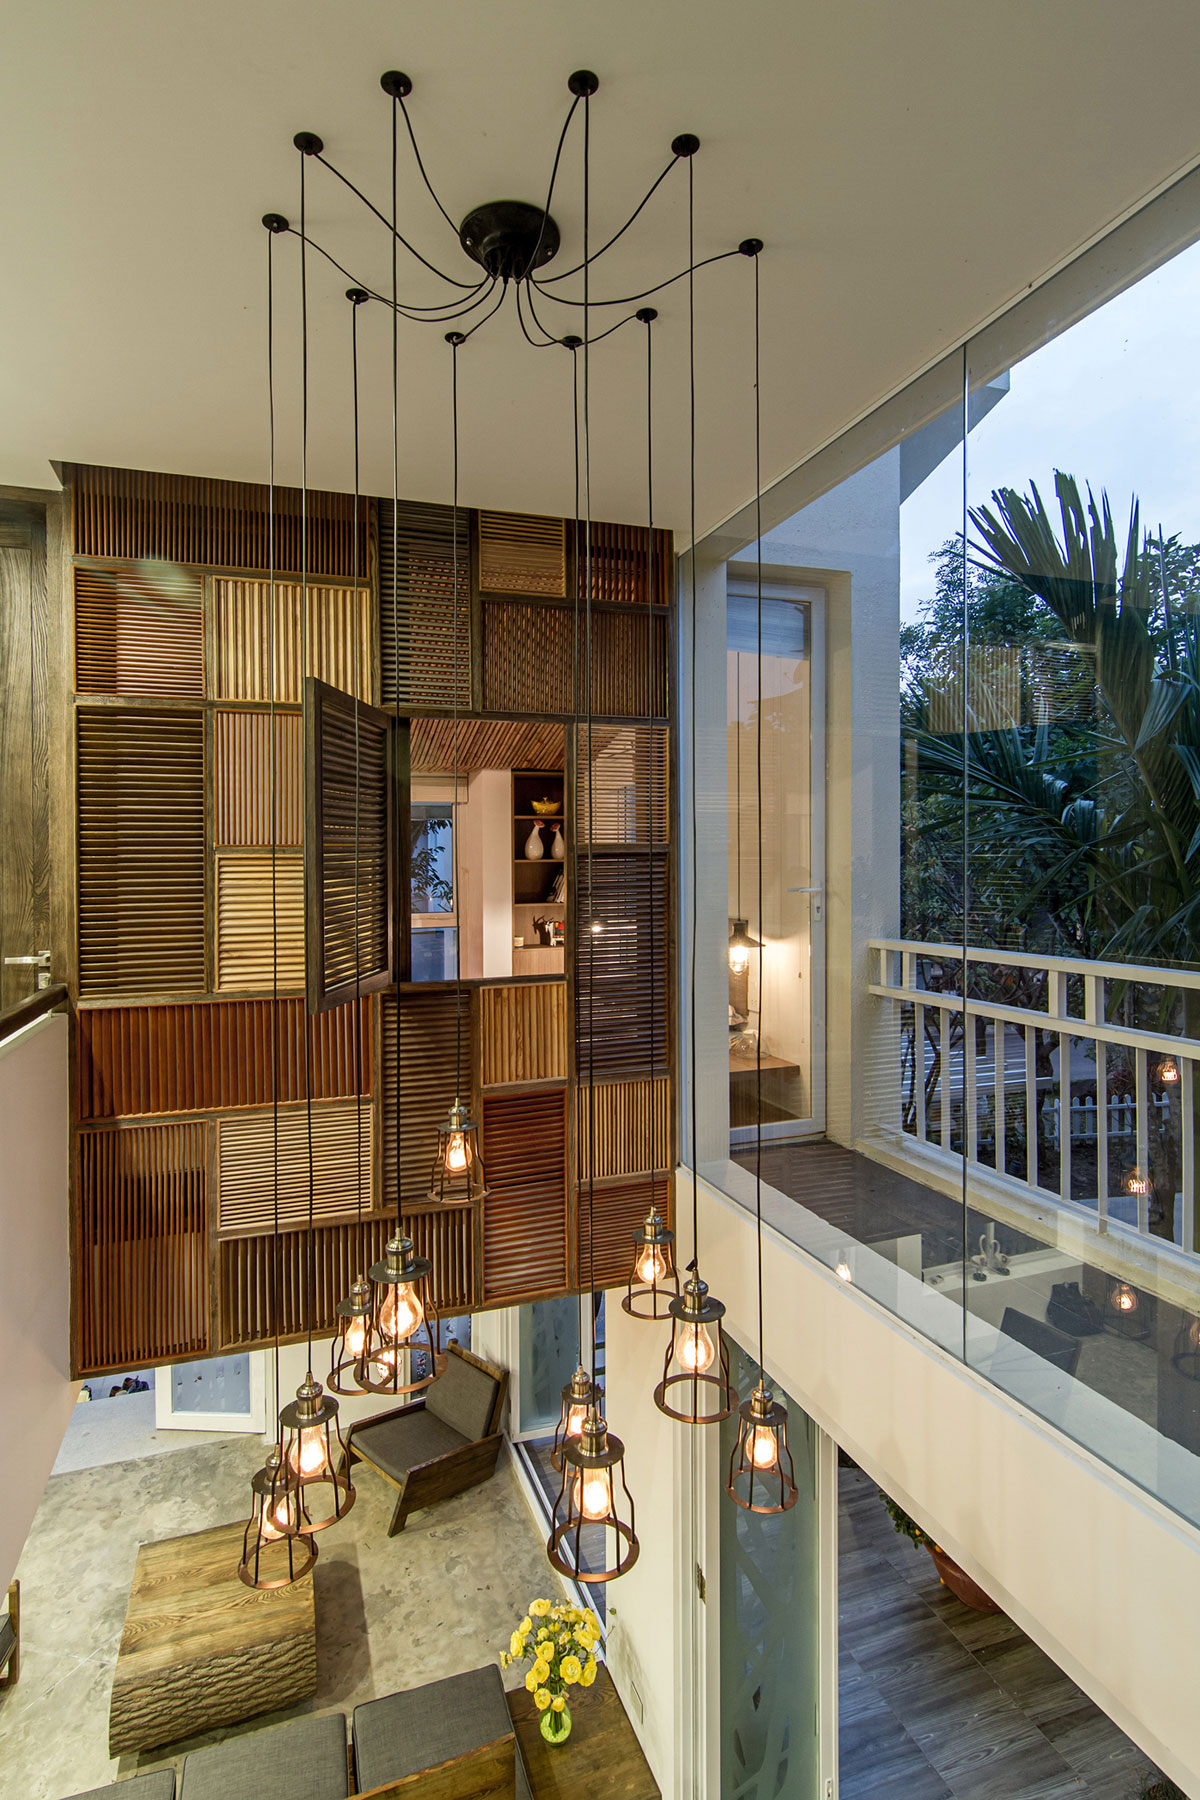 EPV Semi-Detached House Located in Ecopark Green Urban Area, Vietnam by AHL architects associates-20